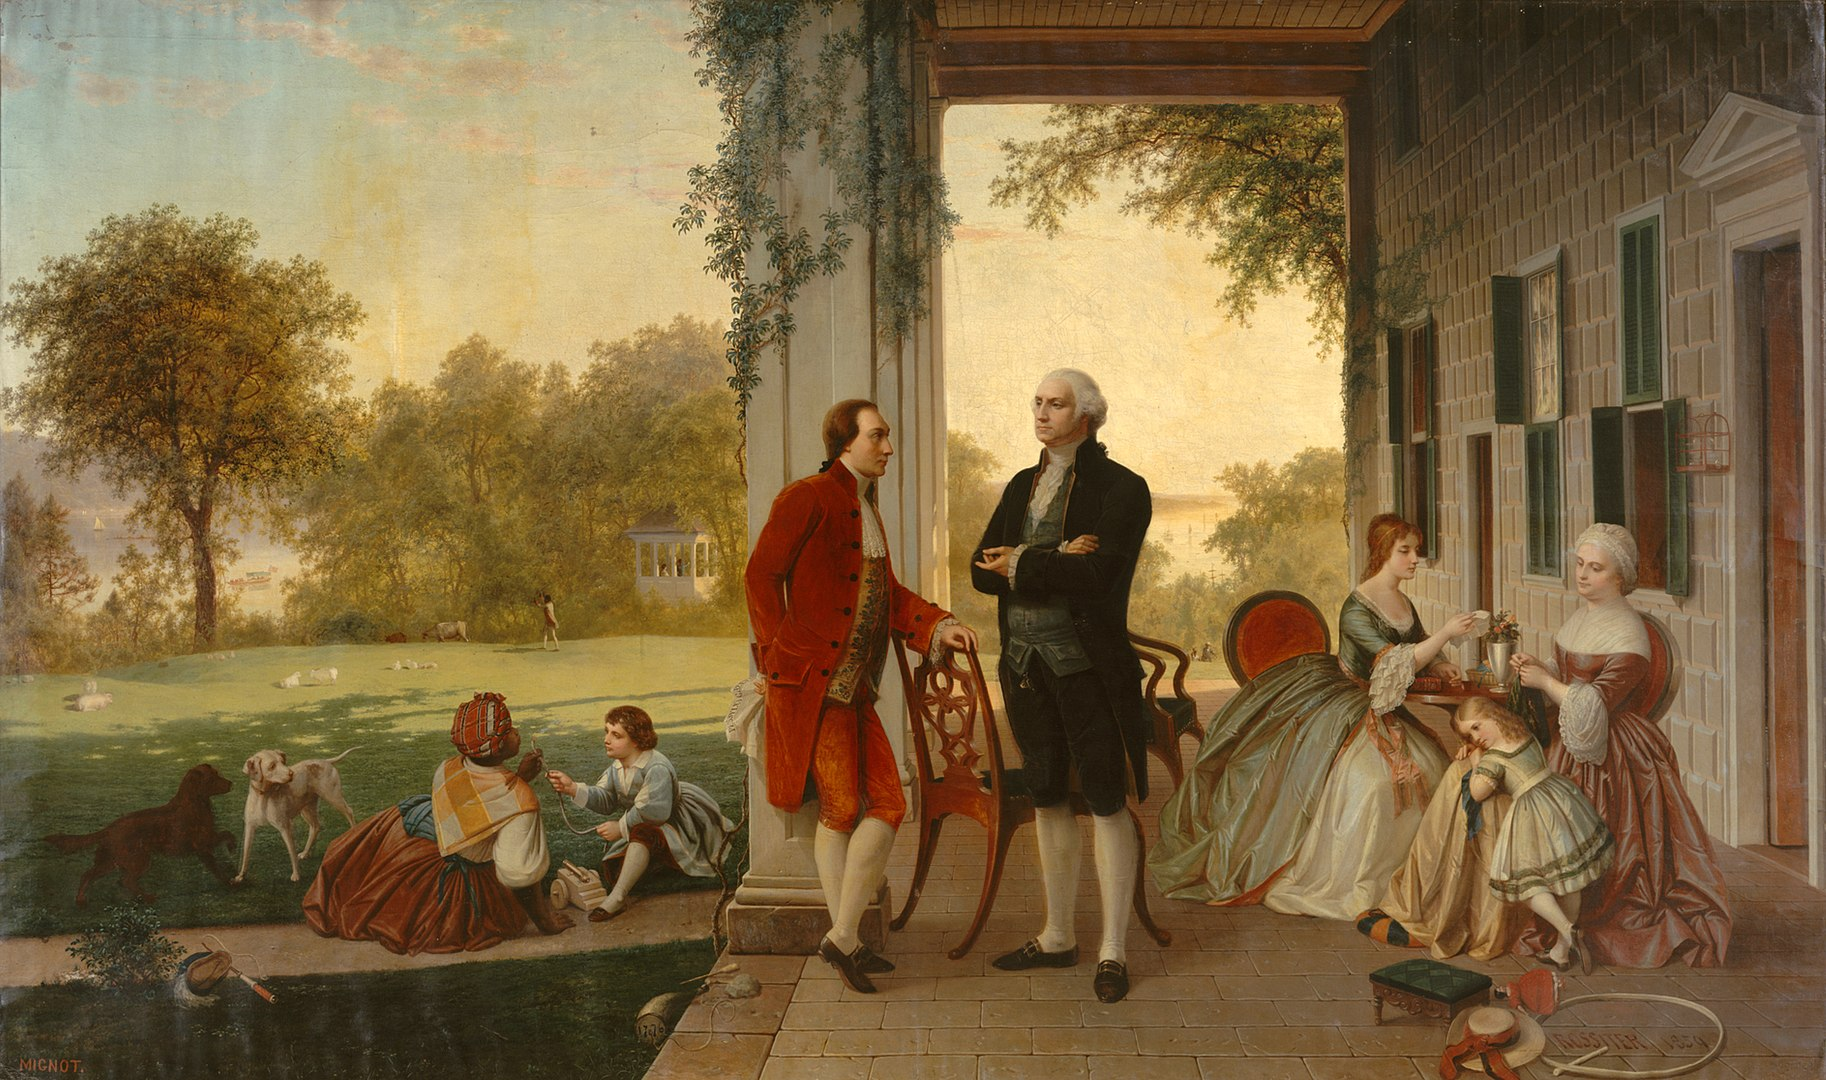 1826px-Washington_and_Lafayette_at_Mount_Vernon,_1784_by_Rossiter_and_Mignot,_1859